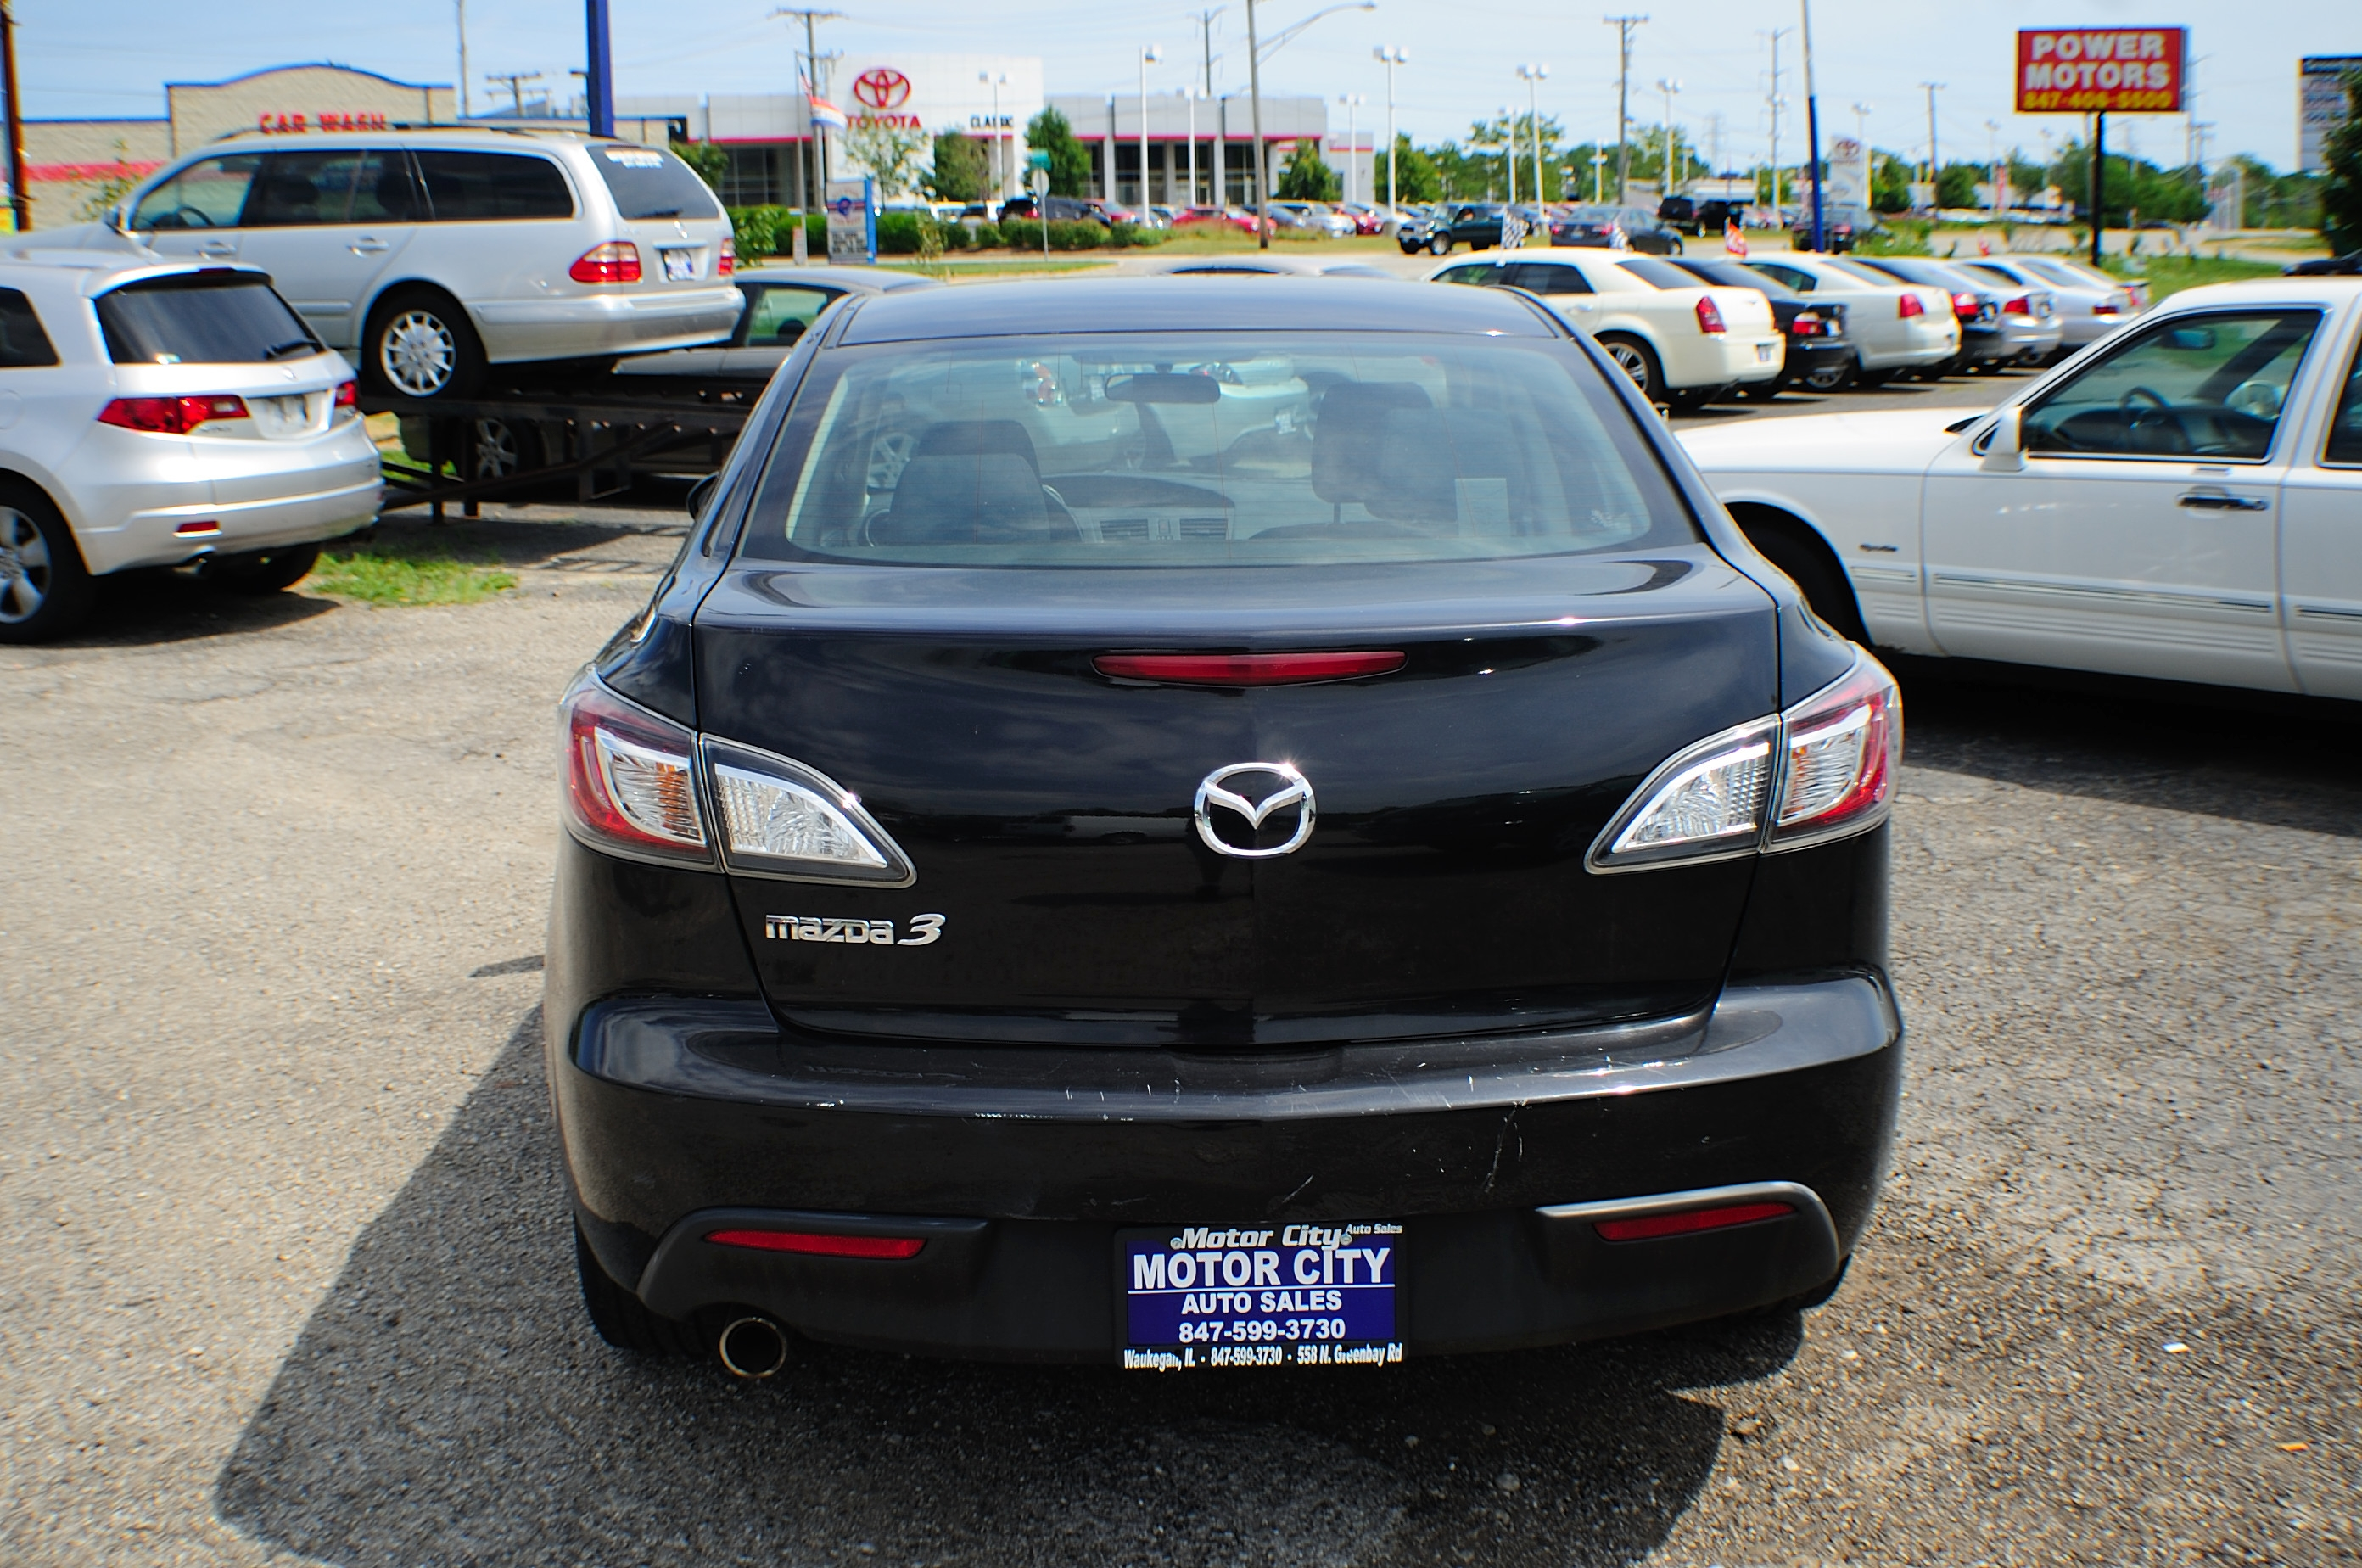 2010 Mazda 3i Black Sport Sedan used car Sale Waukegan Kenosha